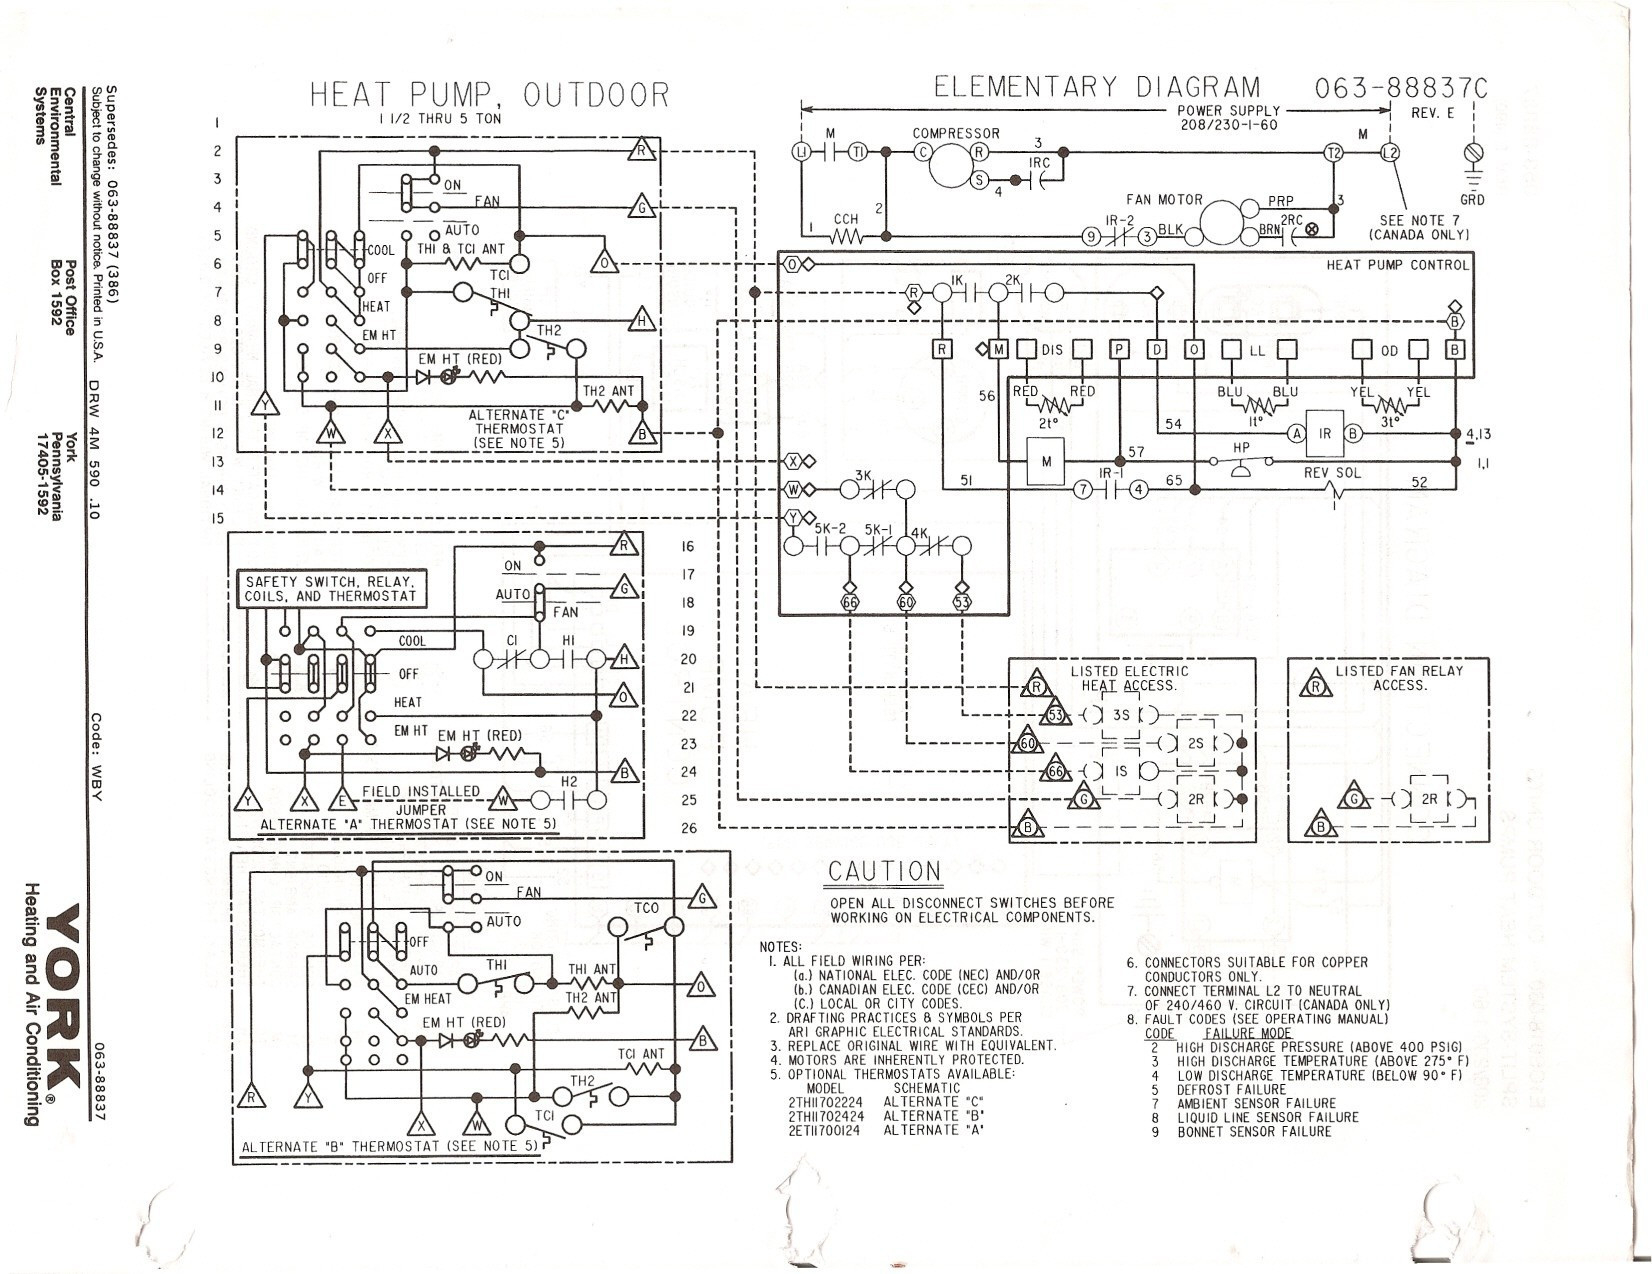 Coleman Eb15b Wiring Diagram Download Sample Goodman Heat Pump Thermostat New Generous York Air